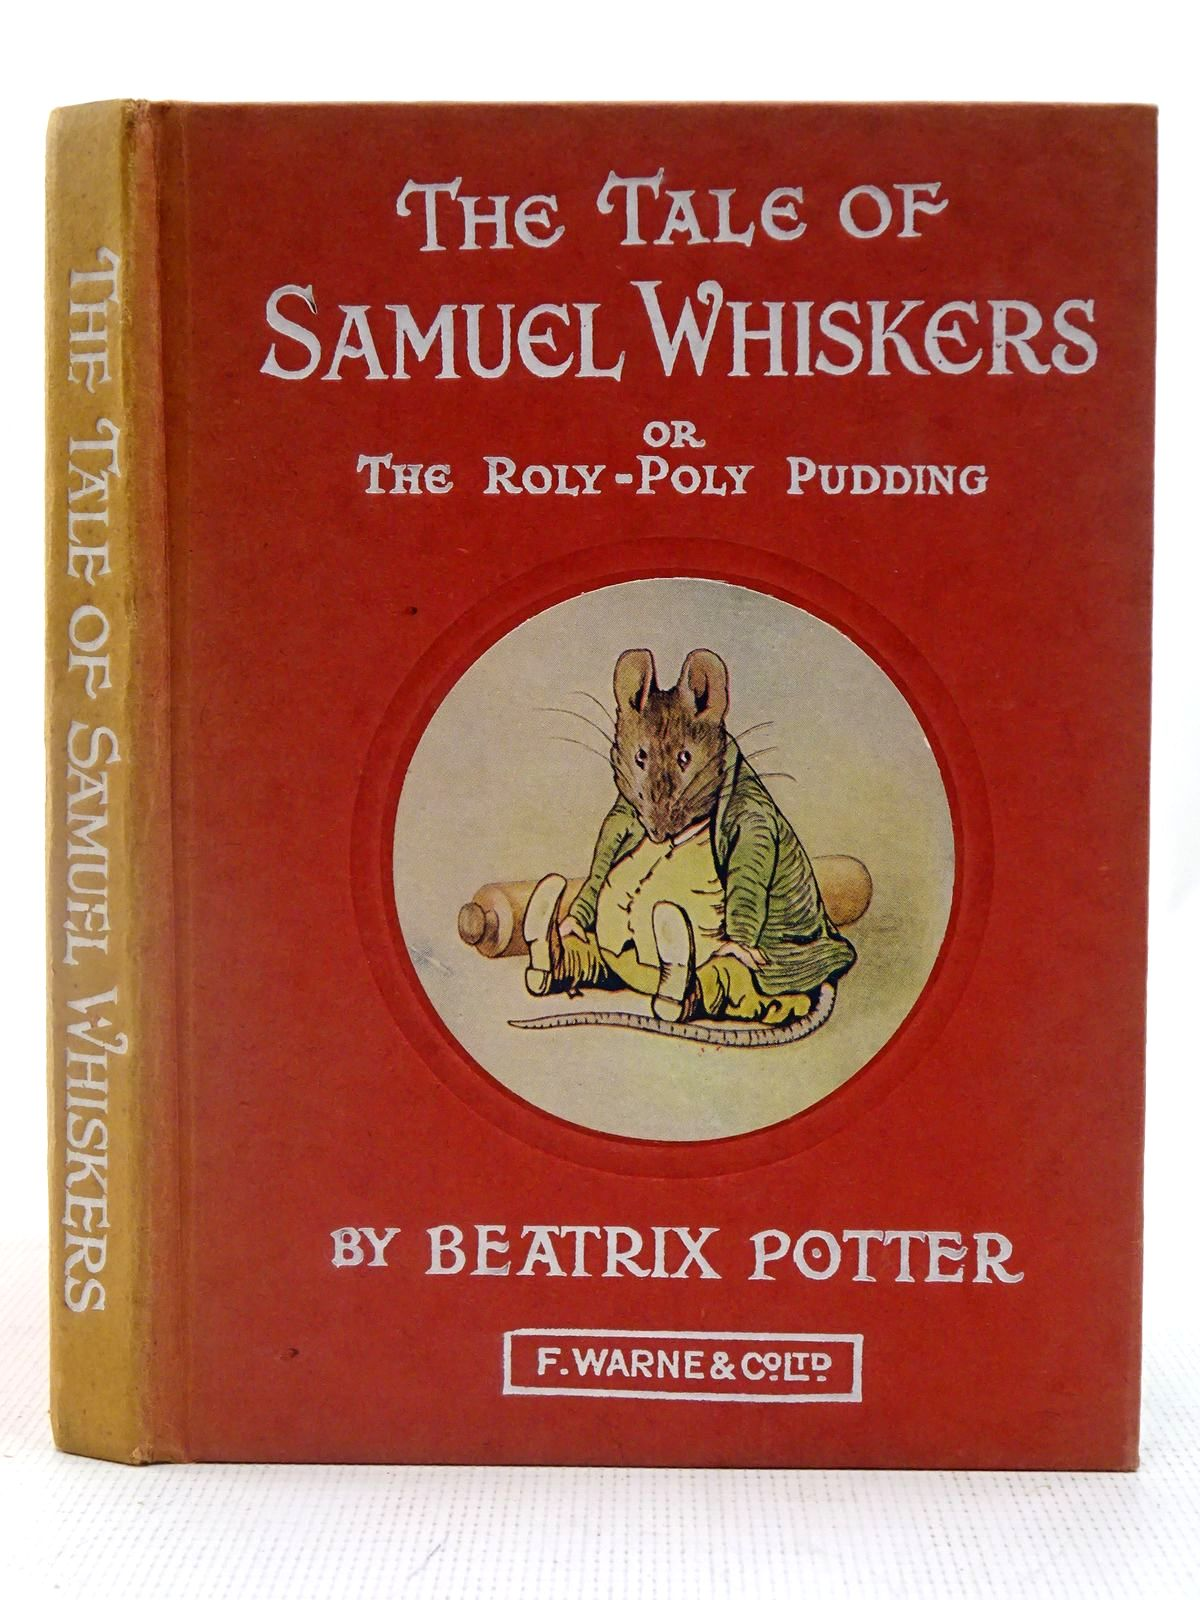 Photo of THE TALE OF SAMUEL WHISKERS OR THE ROLY-POLY PUDDING written by Potter, Beatrix illustrated by Potter, Beatrix published by Frederick Warne & Co Ltd. (STOCK CODE: 2127637)  for sale by Stella & Rose's Books